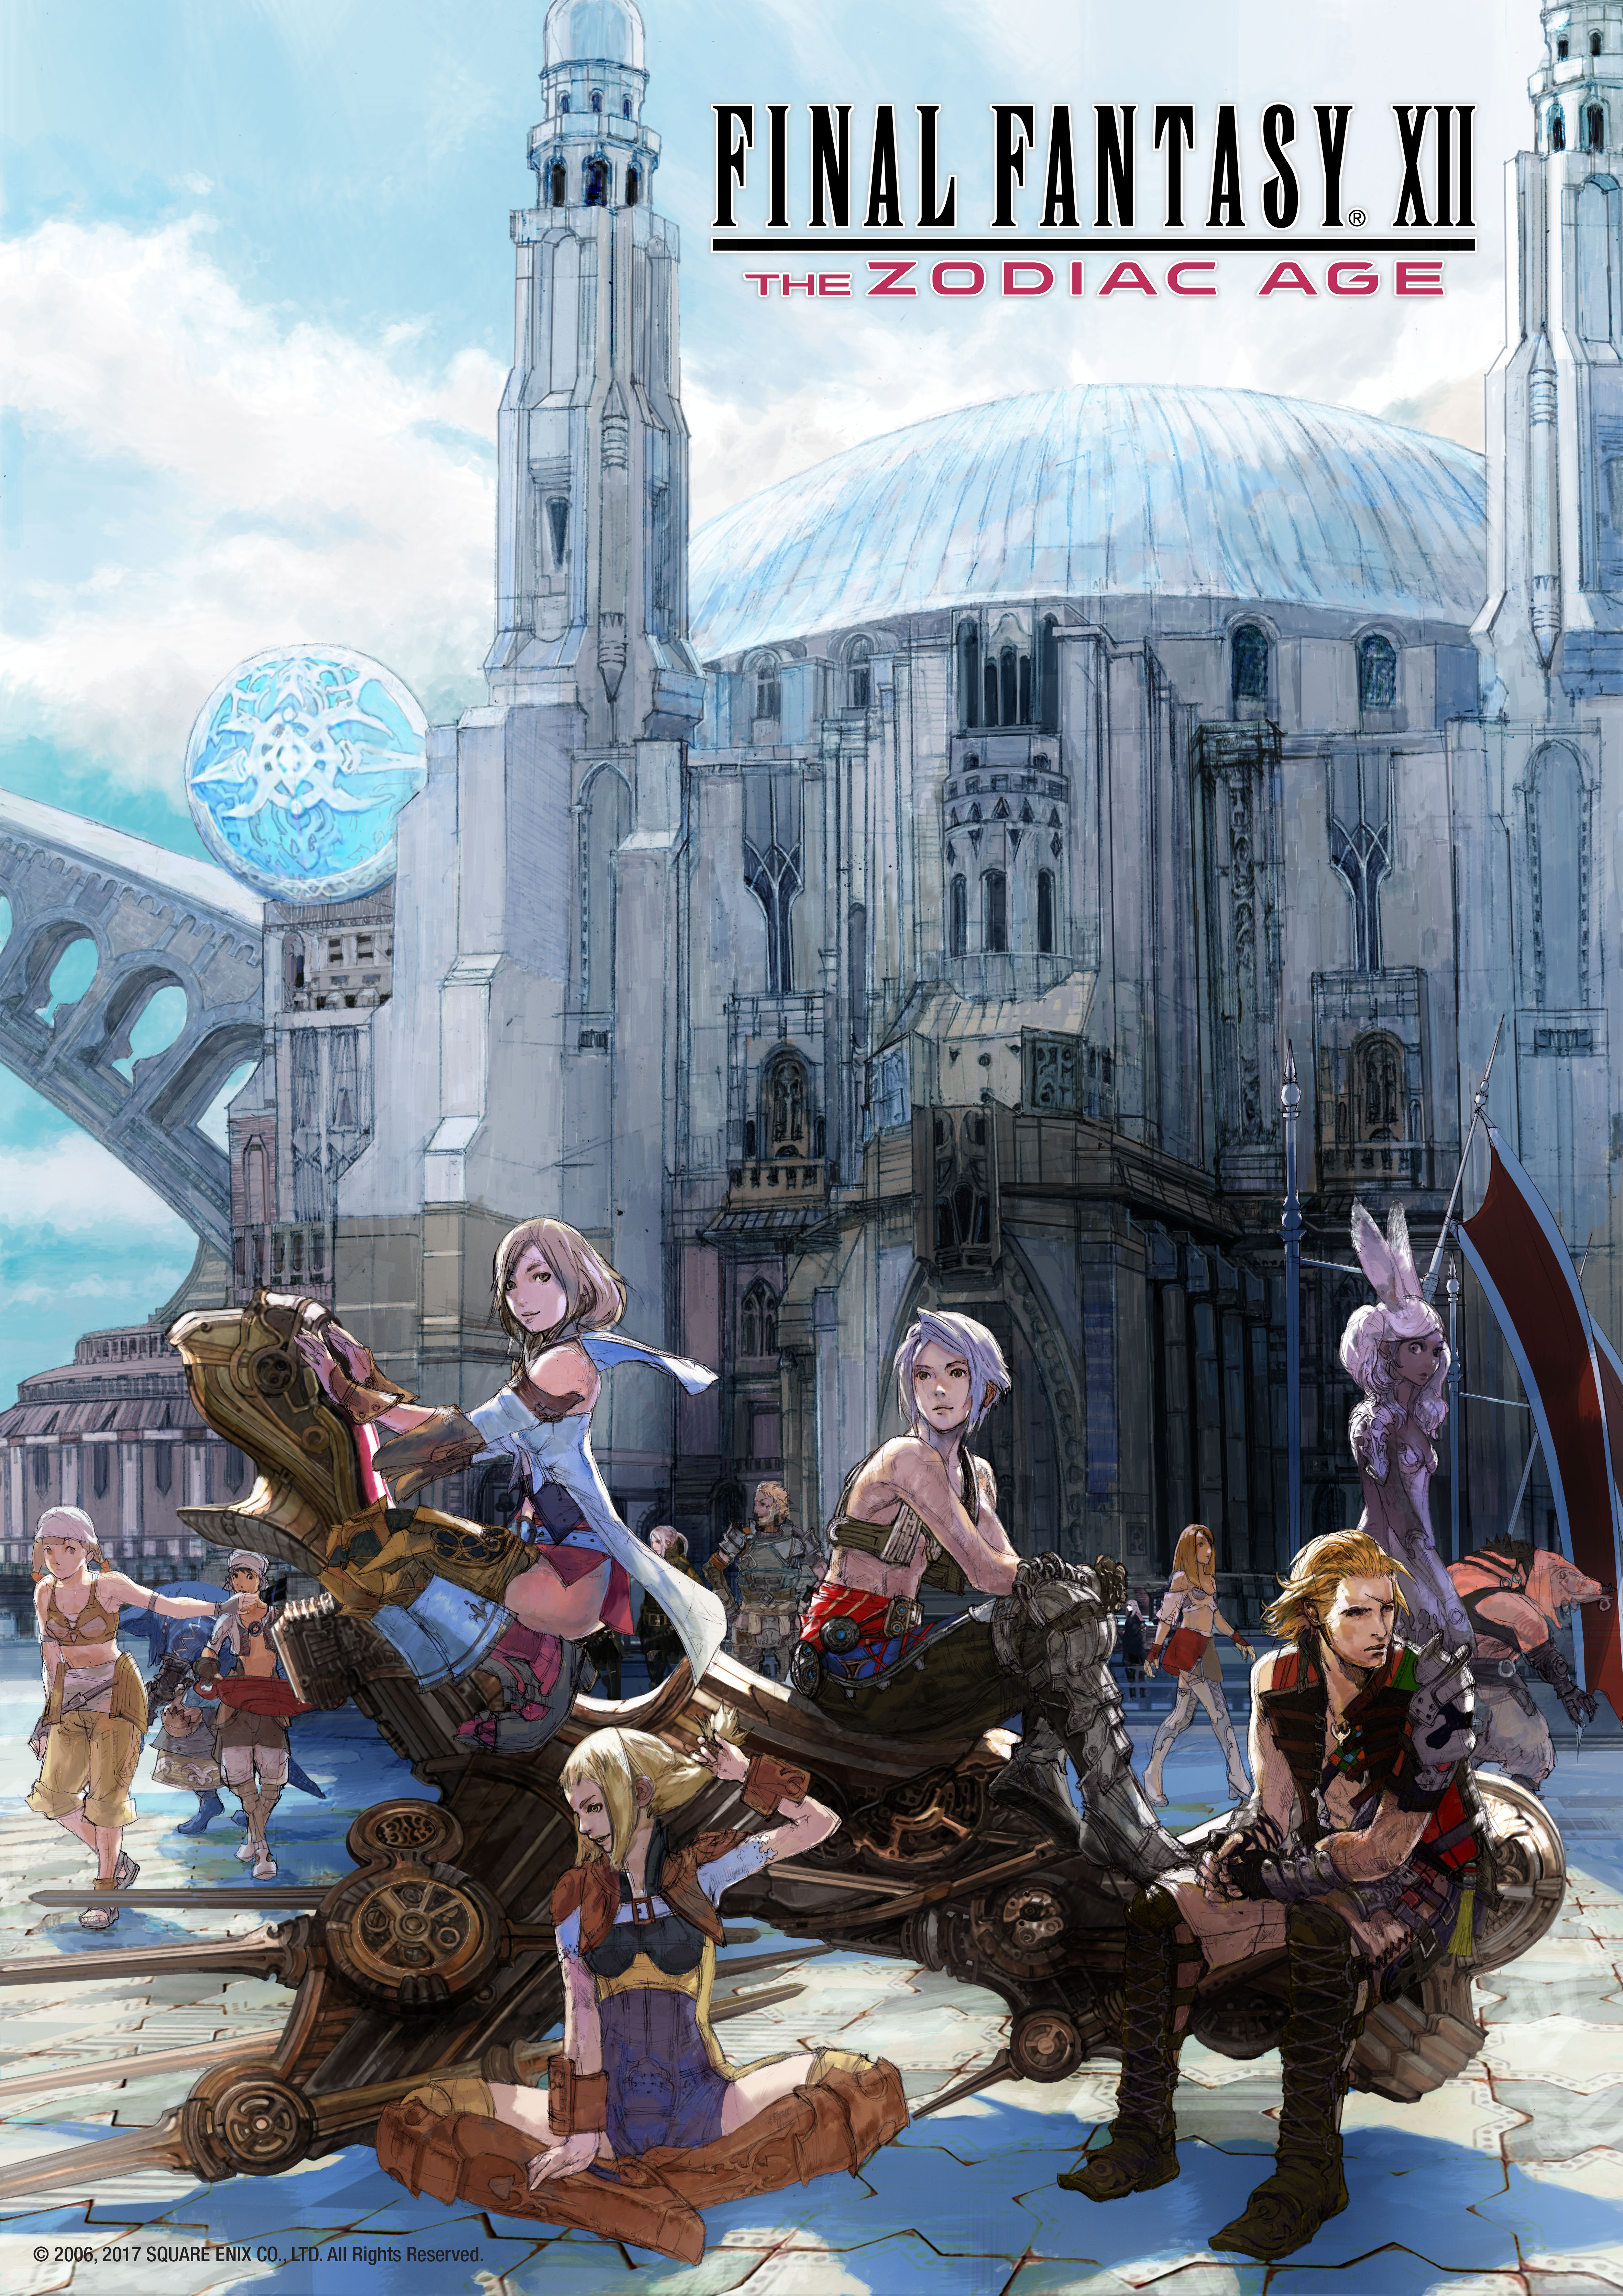 Final Fantasy XII: The Zodiac Age launches for PC on